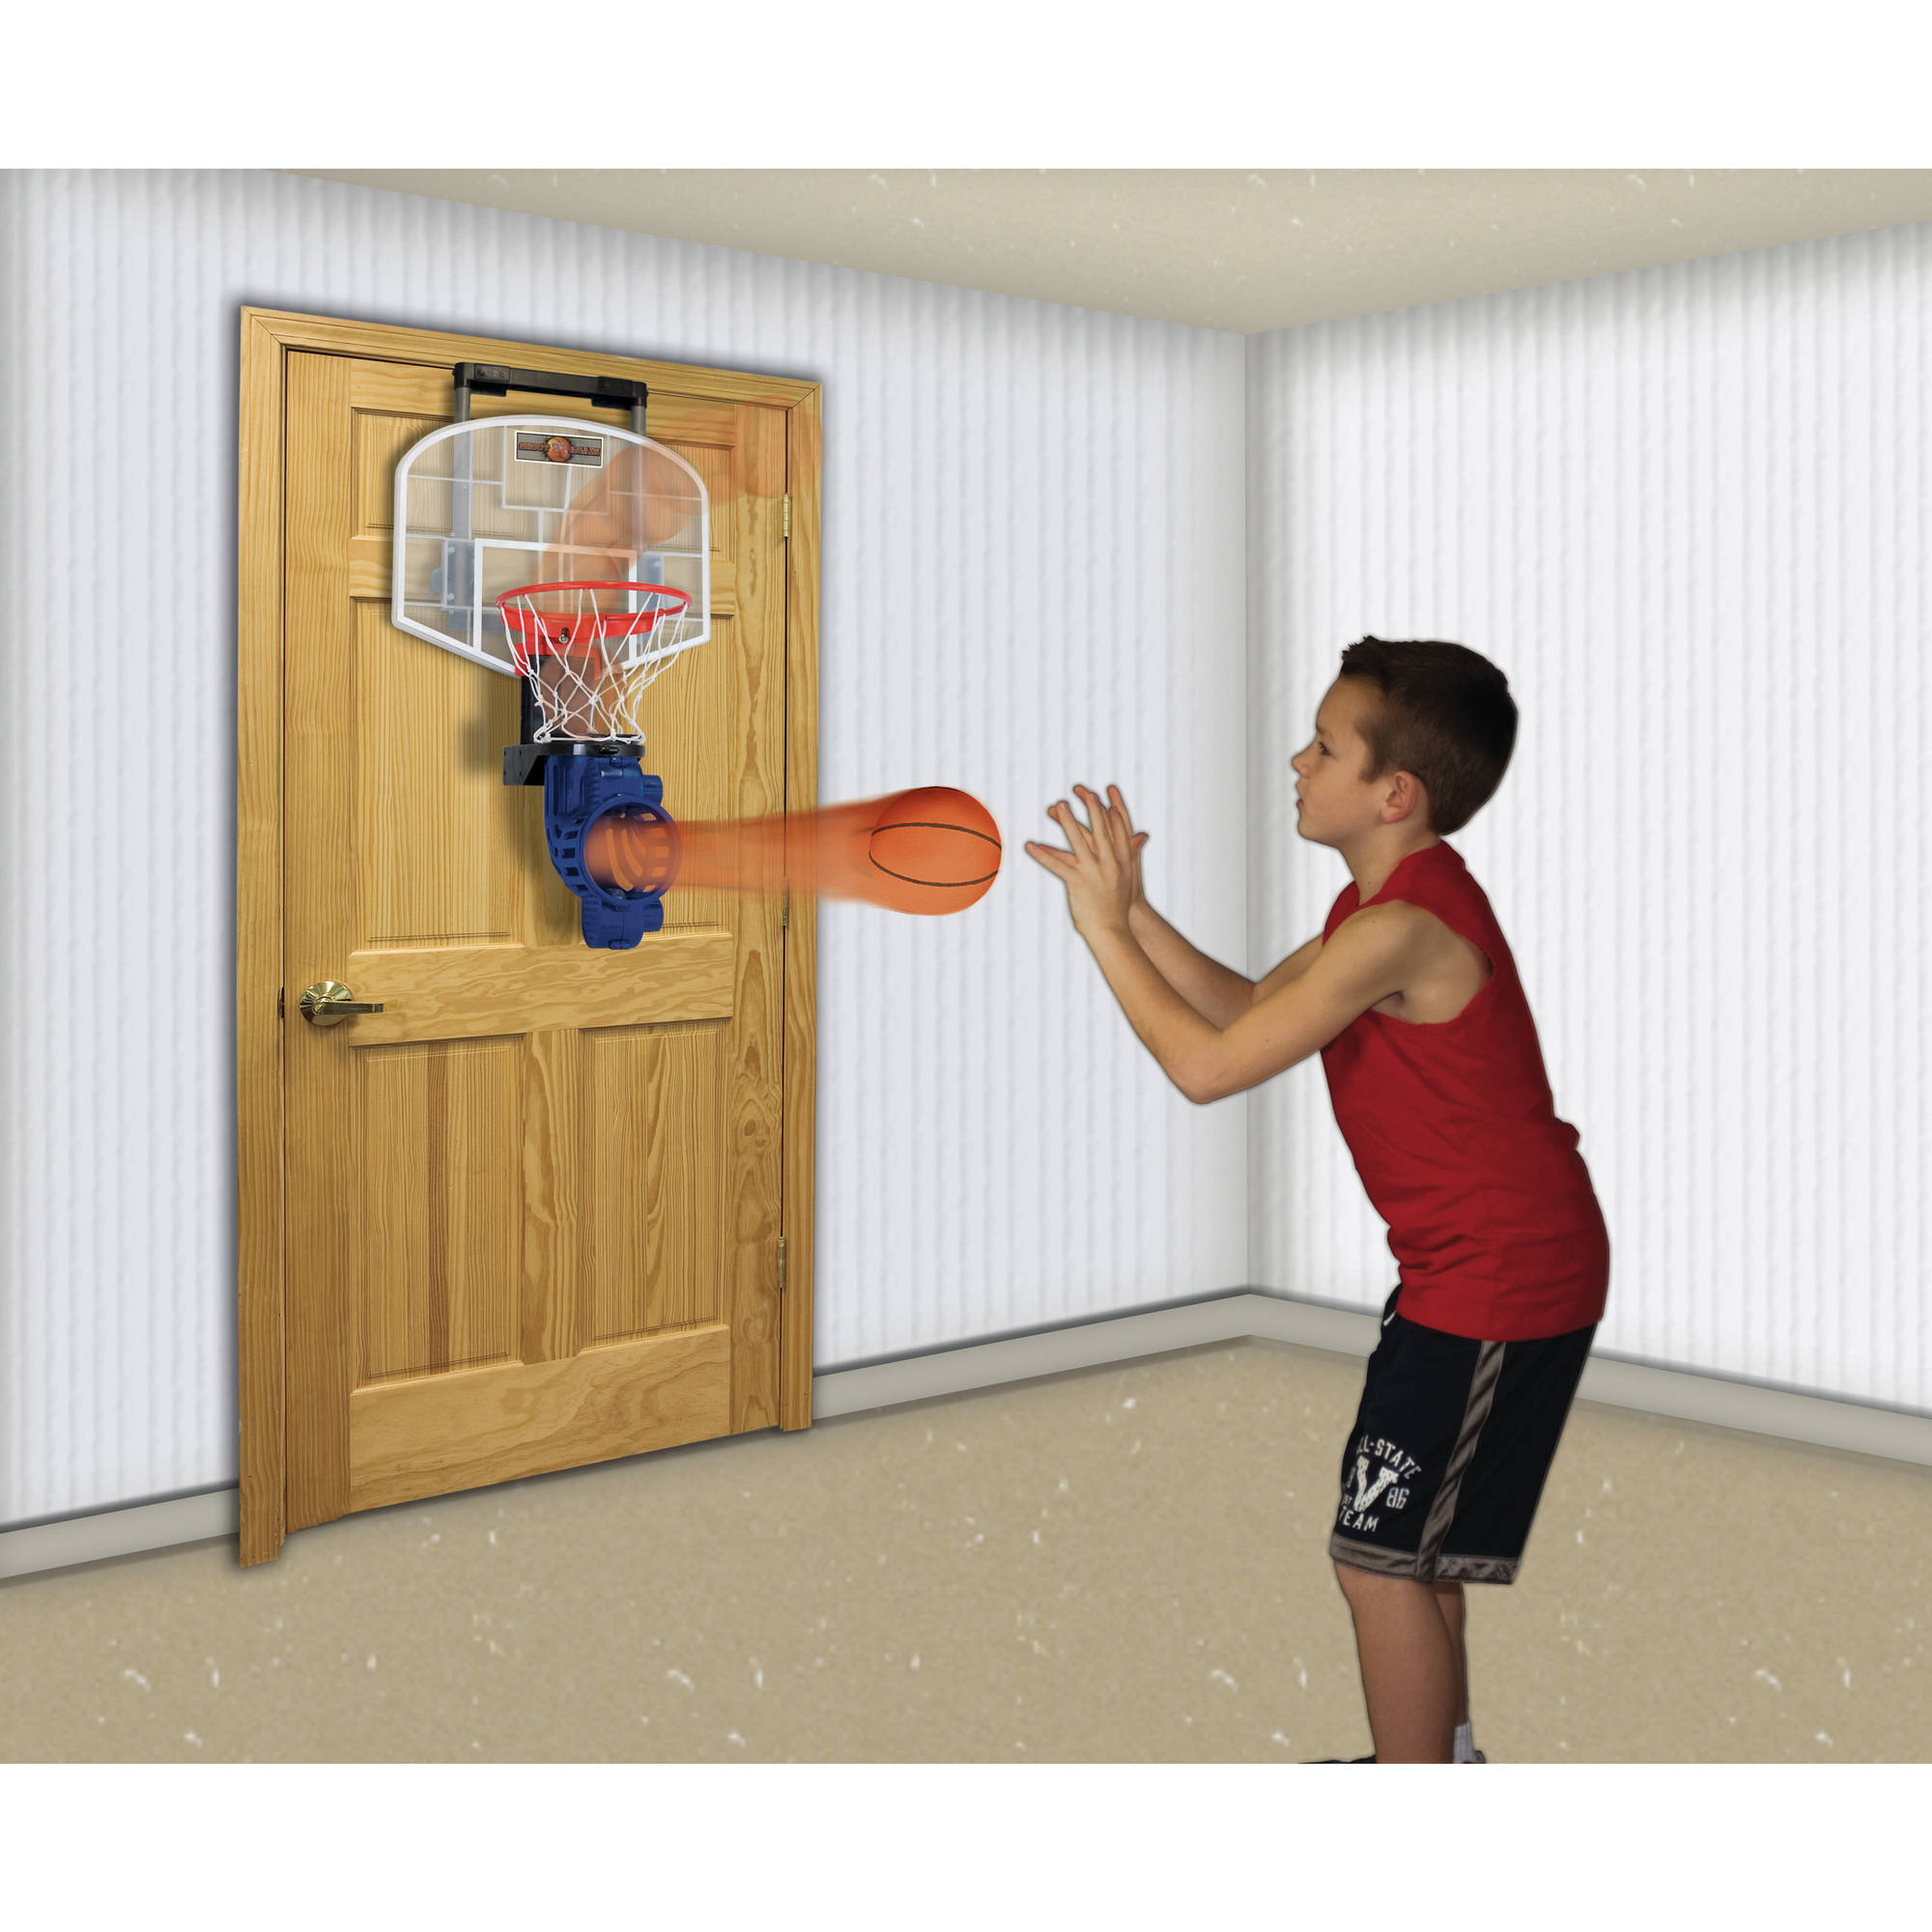 Franklin Sports Shoot Again Over The Door Mini Basketball Hoop With Rebounder And Automatic Ball Return